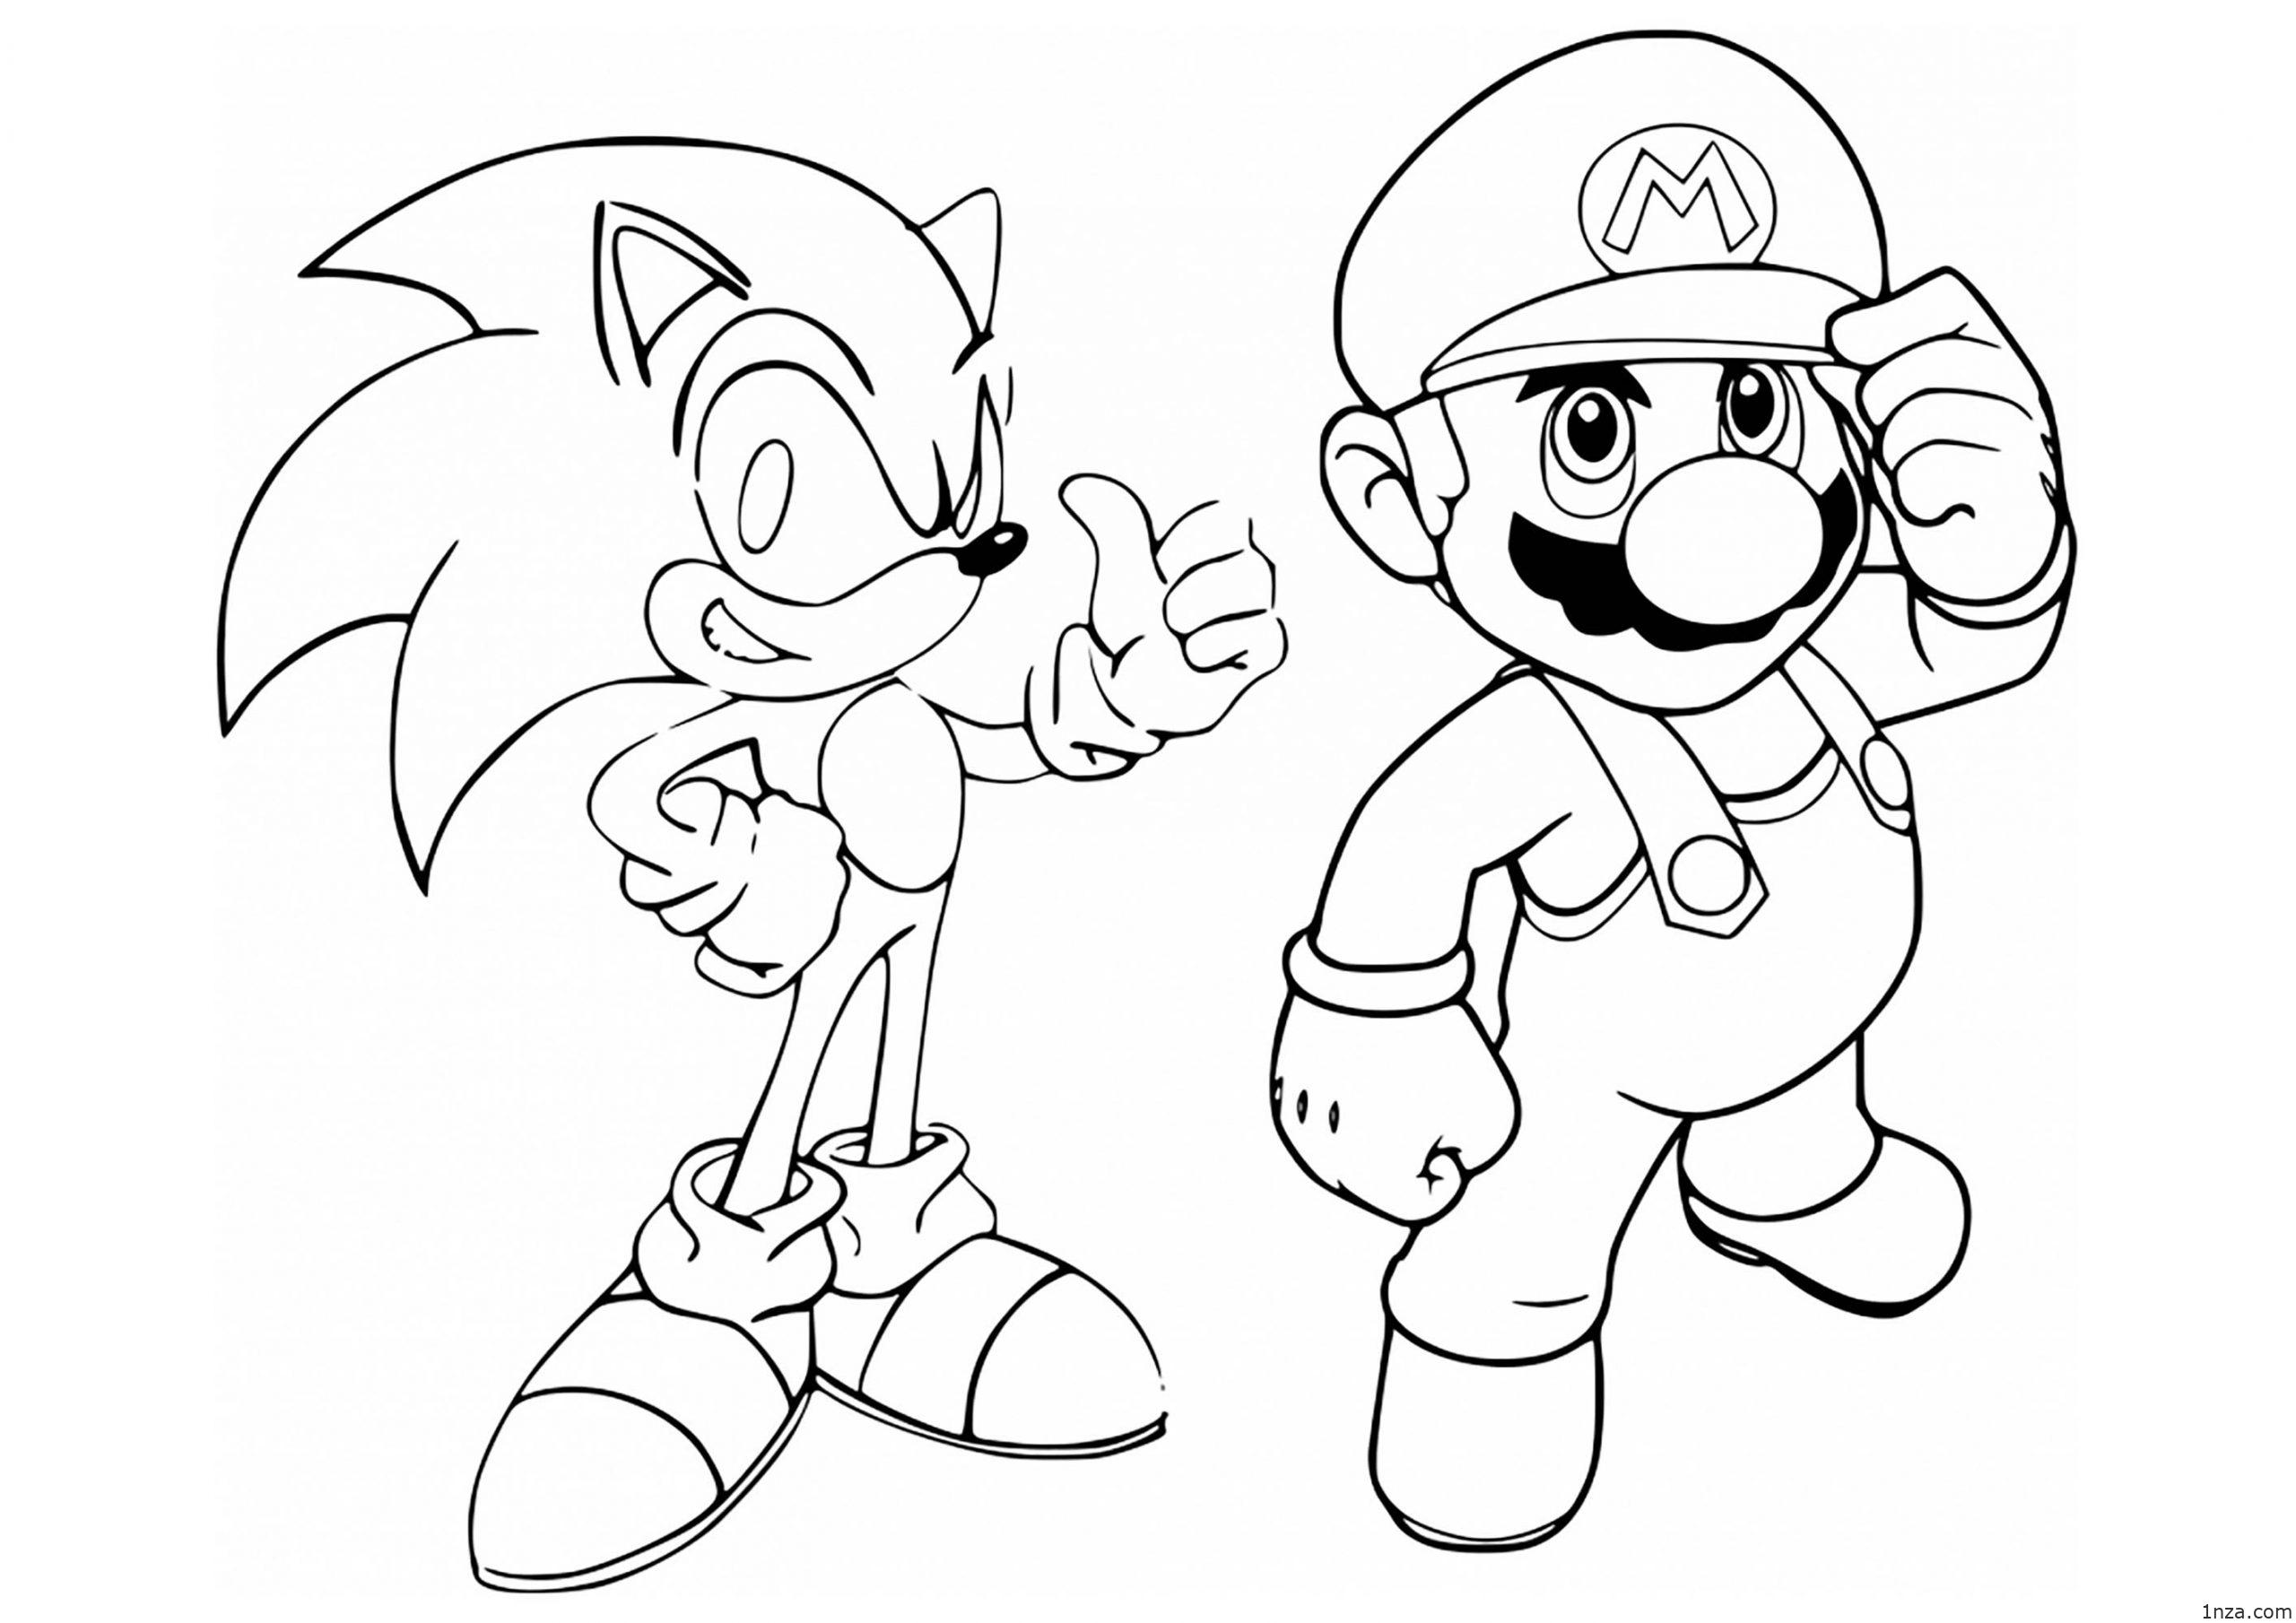 sonic printable 12 free printable sonic the hedgehog coloring pages 1nza printable sonic